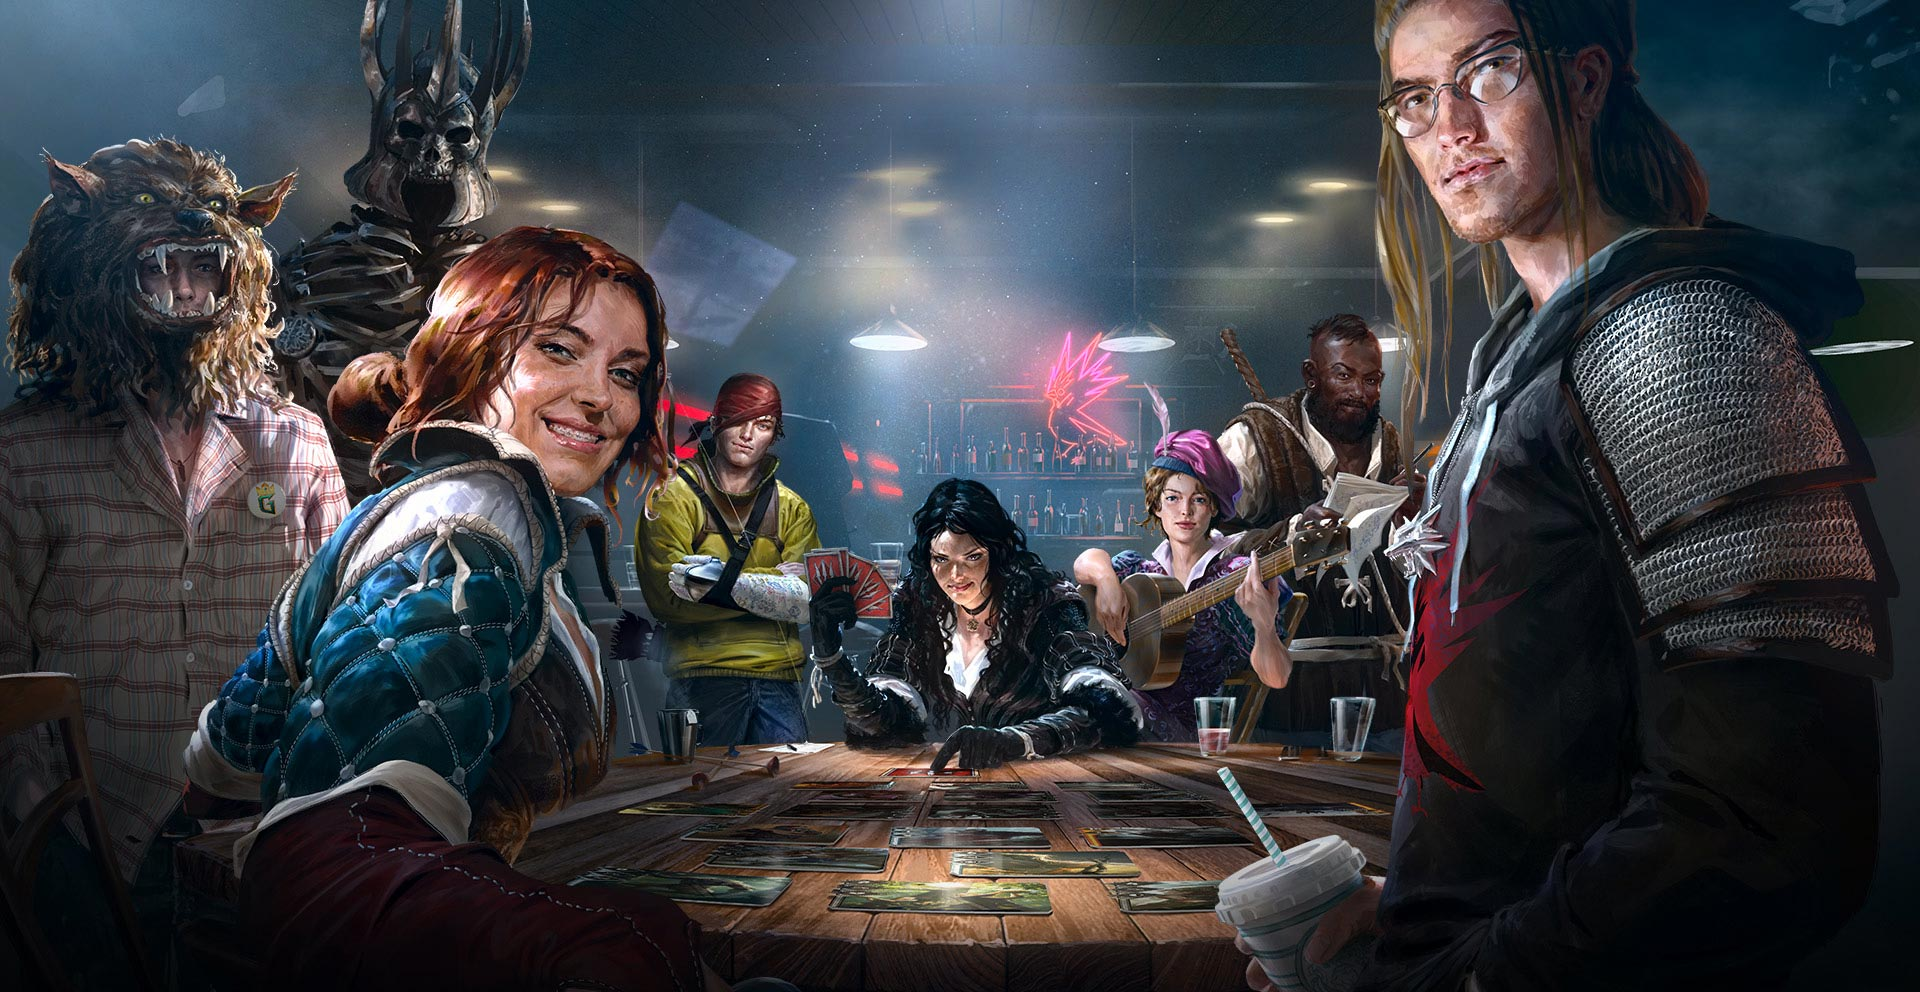 Анонс и геймплей Gwent: The Witcher Card Game